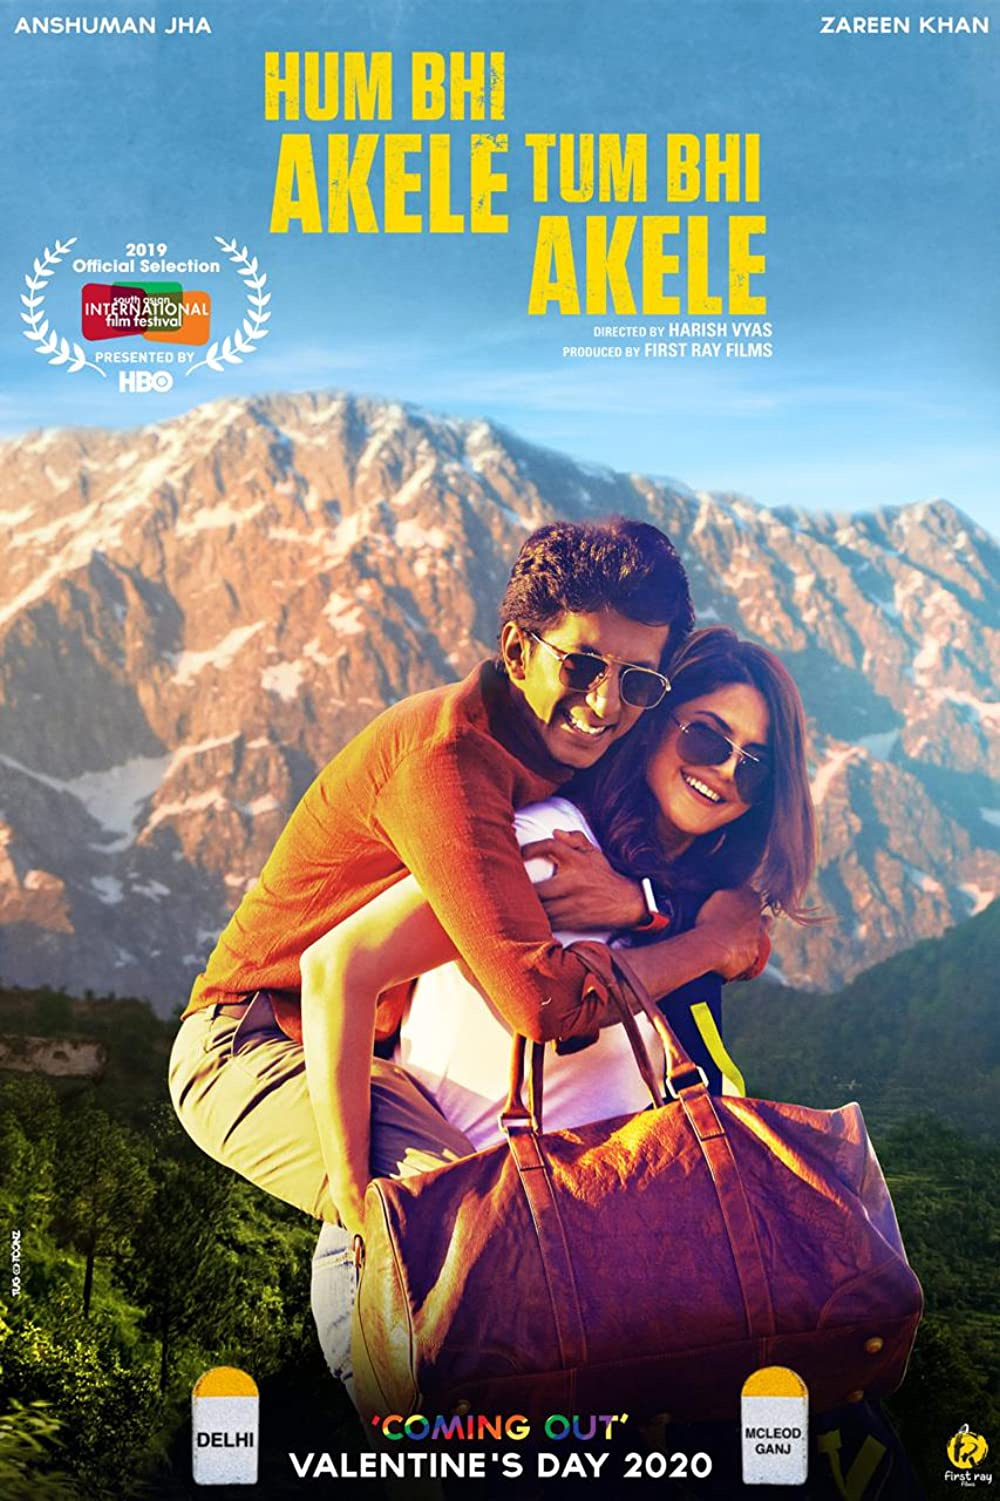 Hum Bhi Akele Tum Bhi Akele 2021 Hindi Movie Official Trailer 1080p HDRip 41MB Download